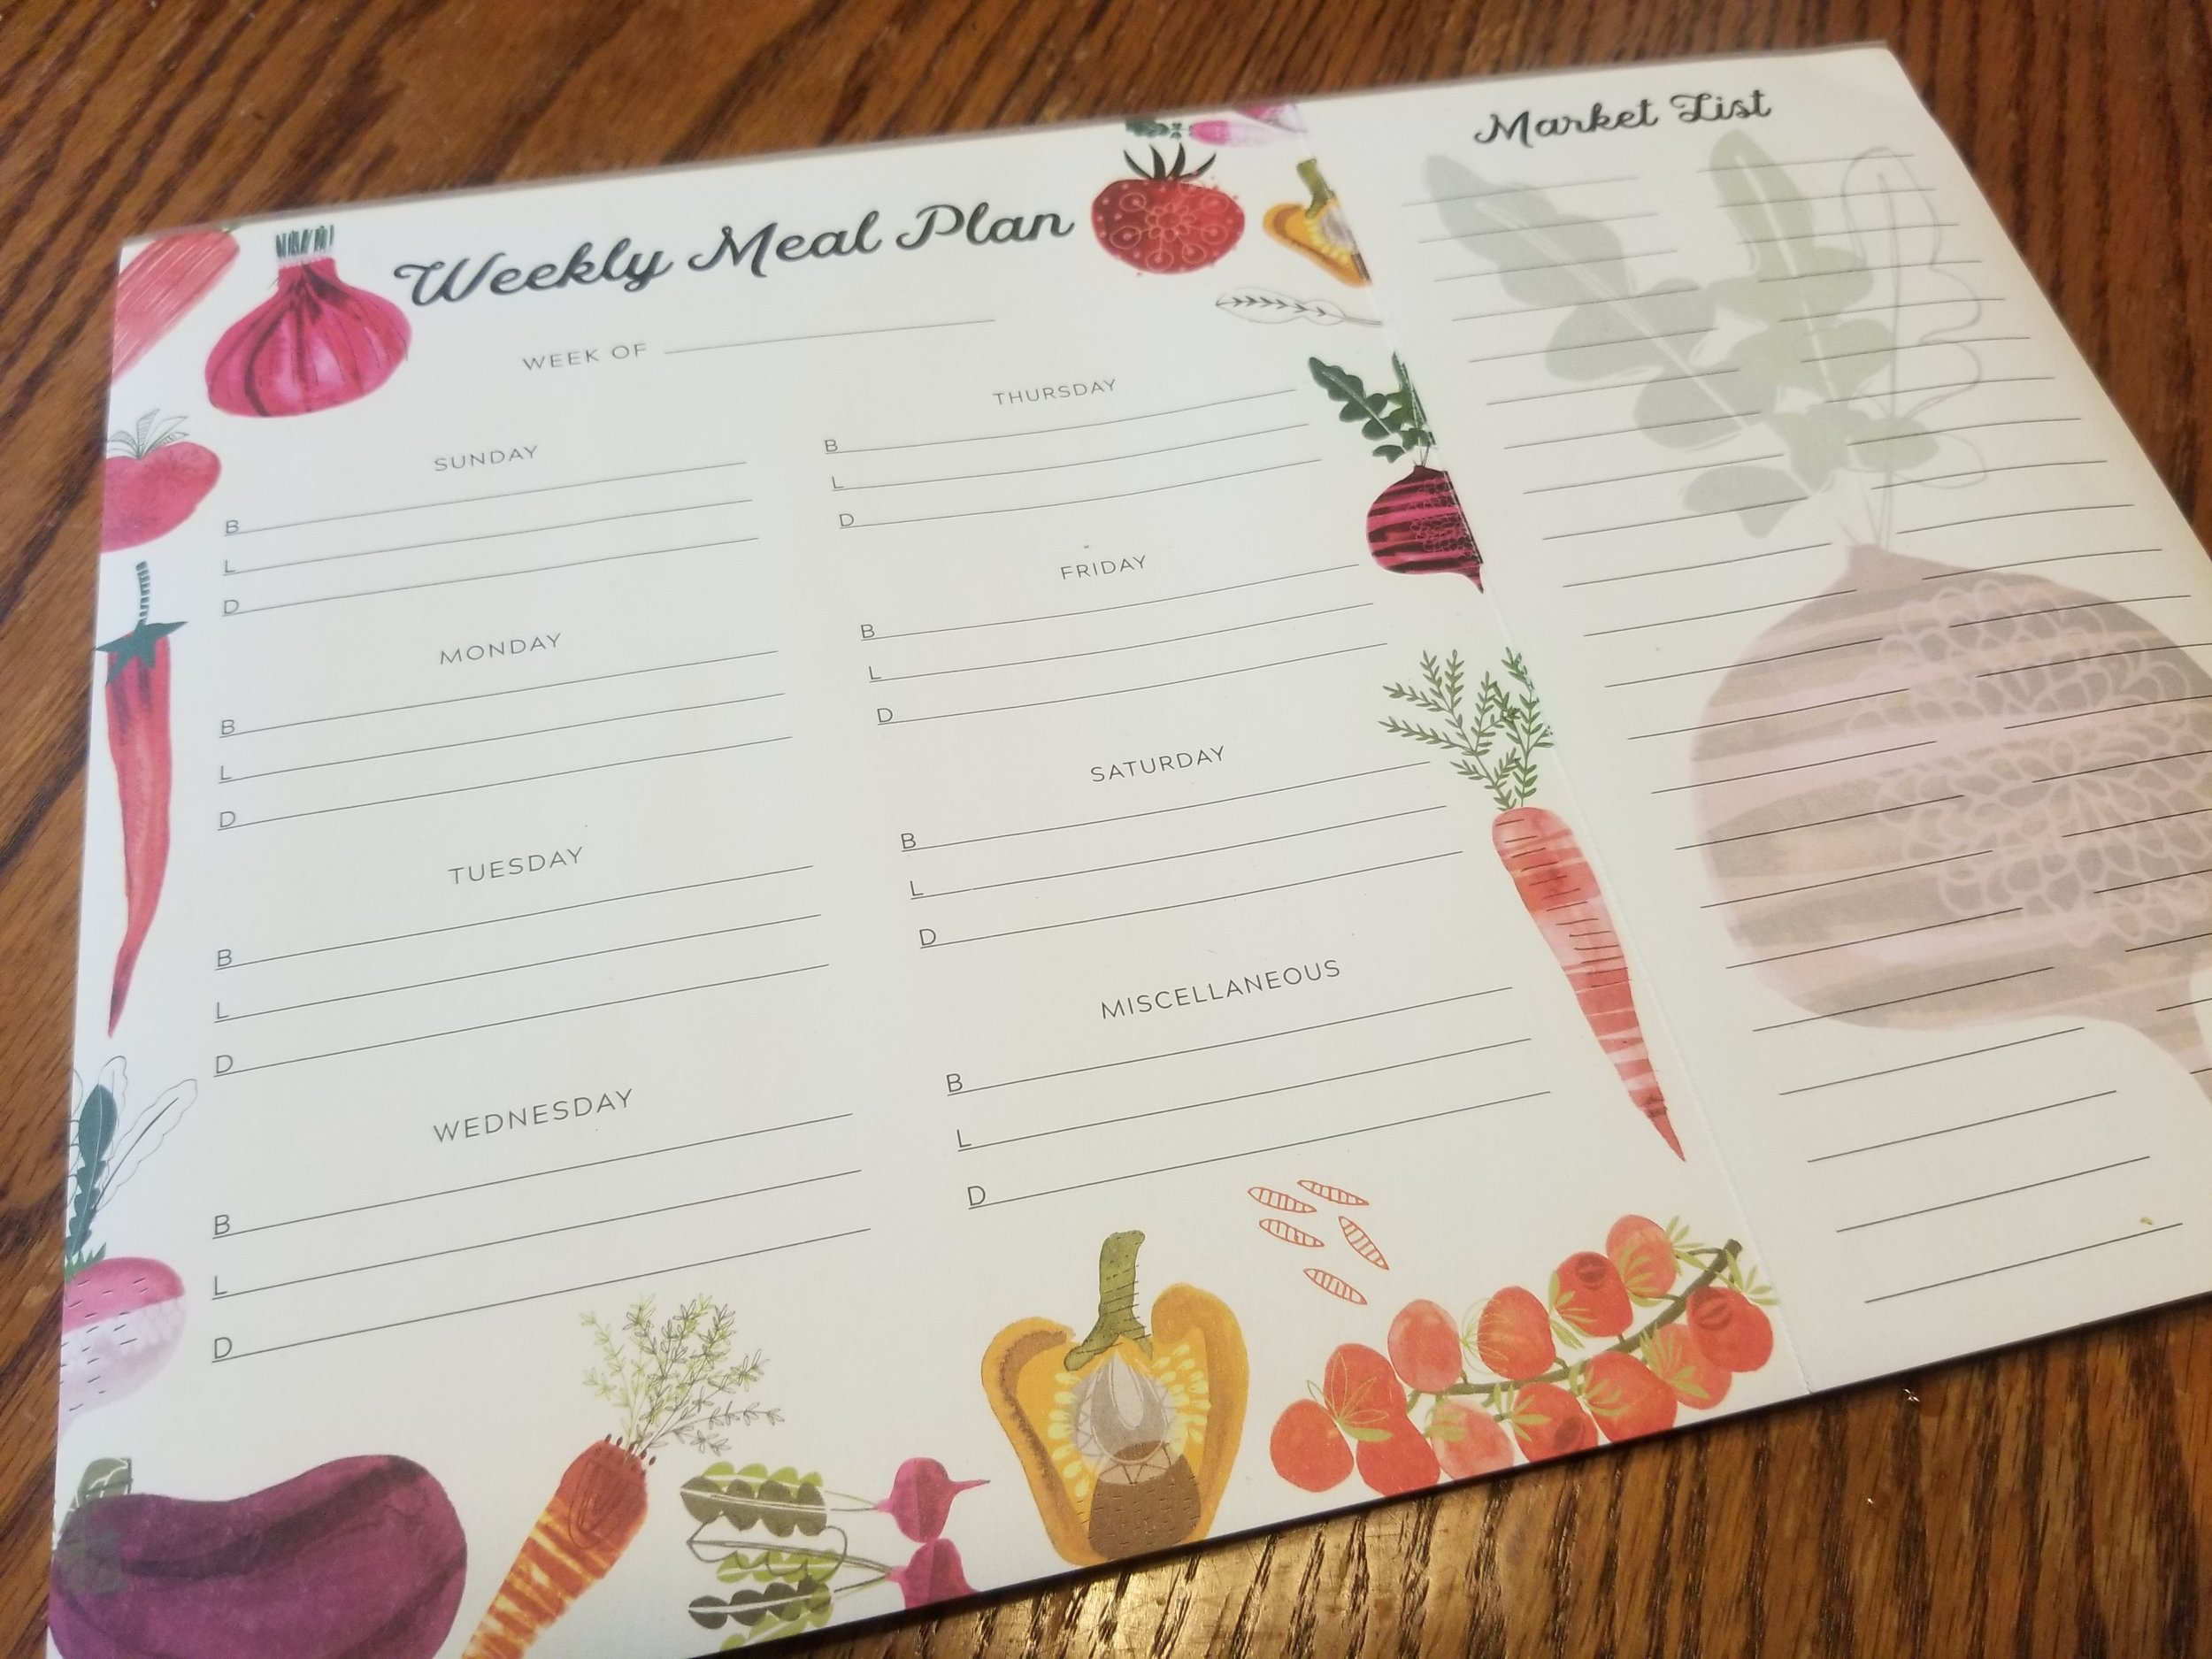 Weekly Meal Plan and Market list.jpg